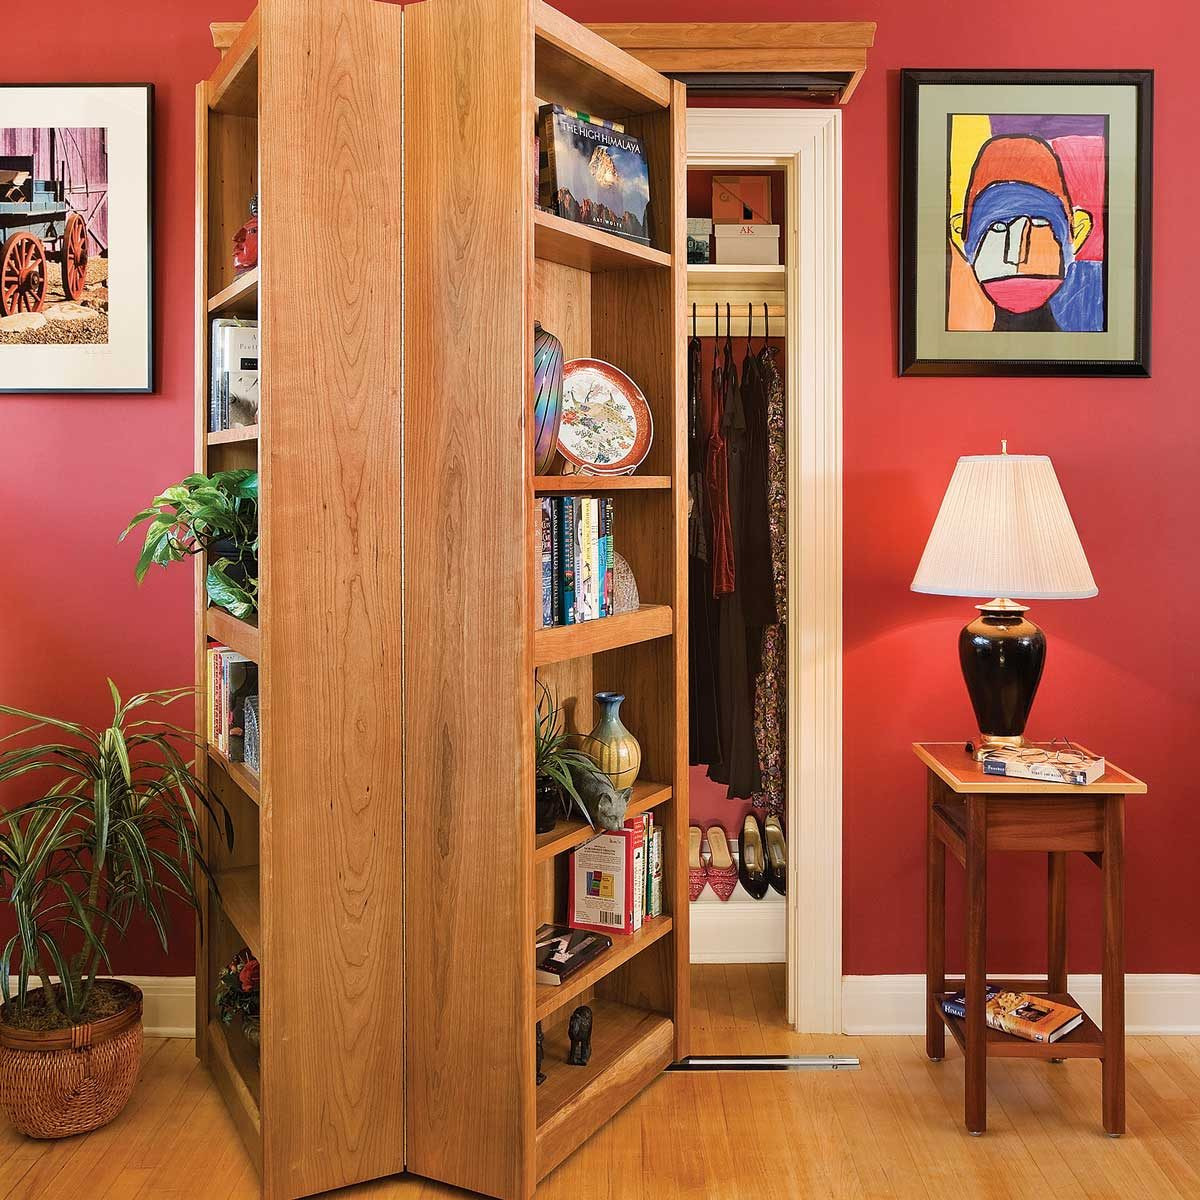 Bifold Bookcase Hides a Secret Room